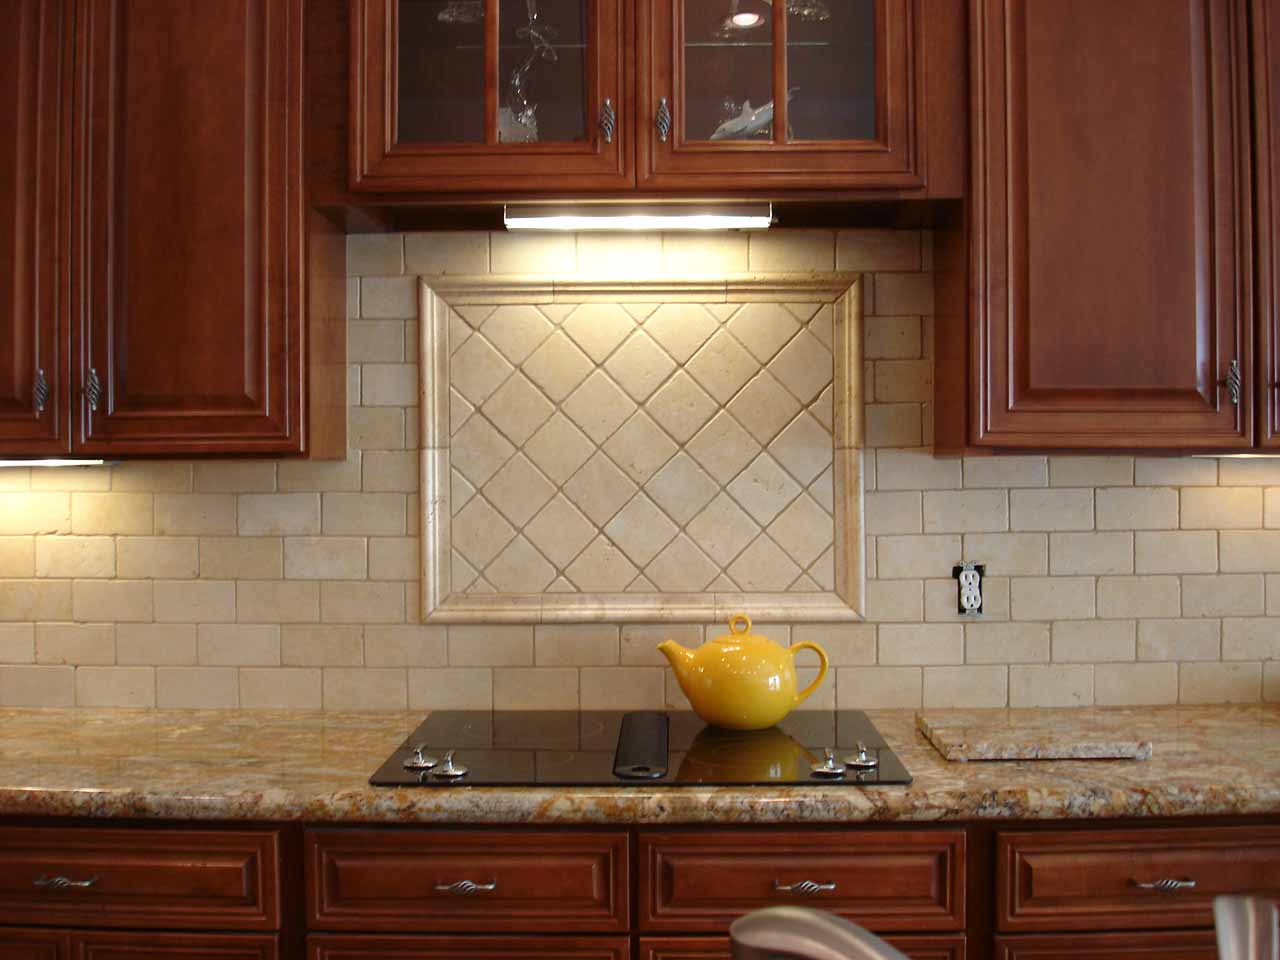 75 kitchen backsplash ideas for 2018 tile glass metal etc for Beige kitchen designs